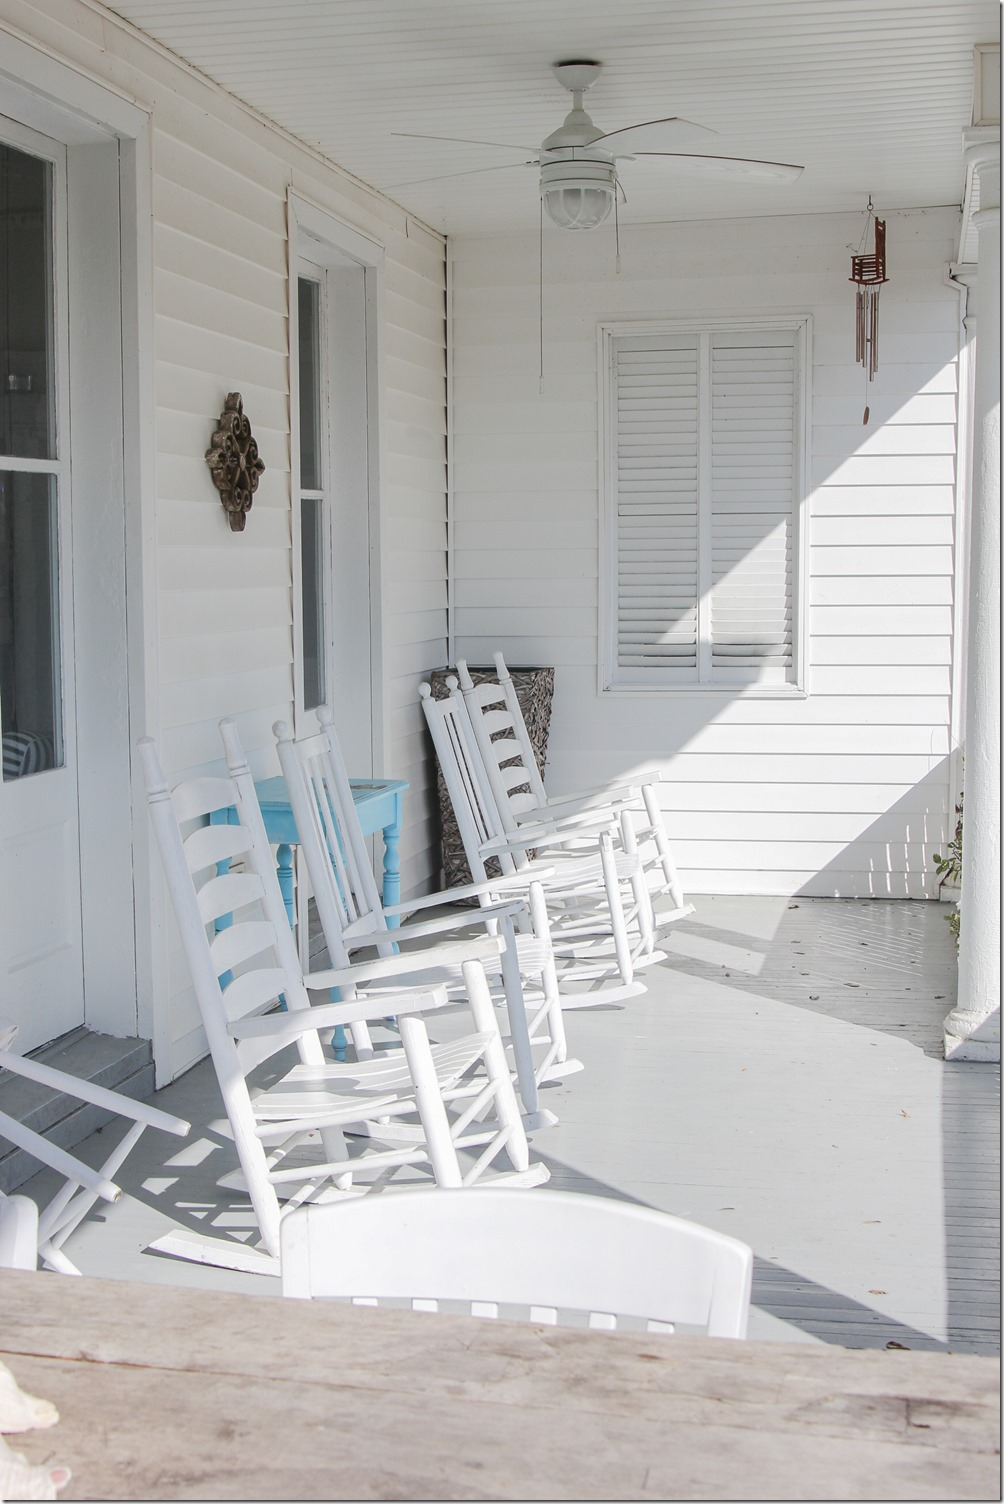 Tybee Island, Georgia is the perfect beachy getaway, where you can hang out in a rocking chair on the porch with a drink and a good book.